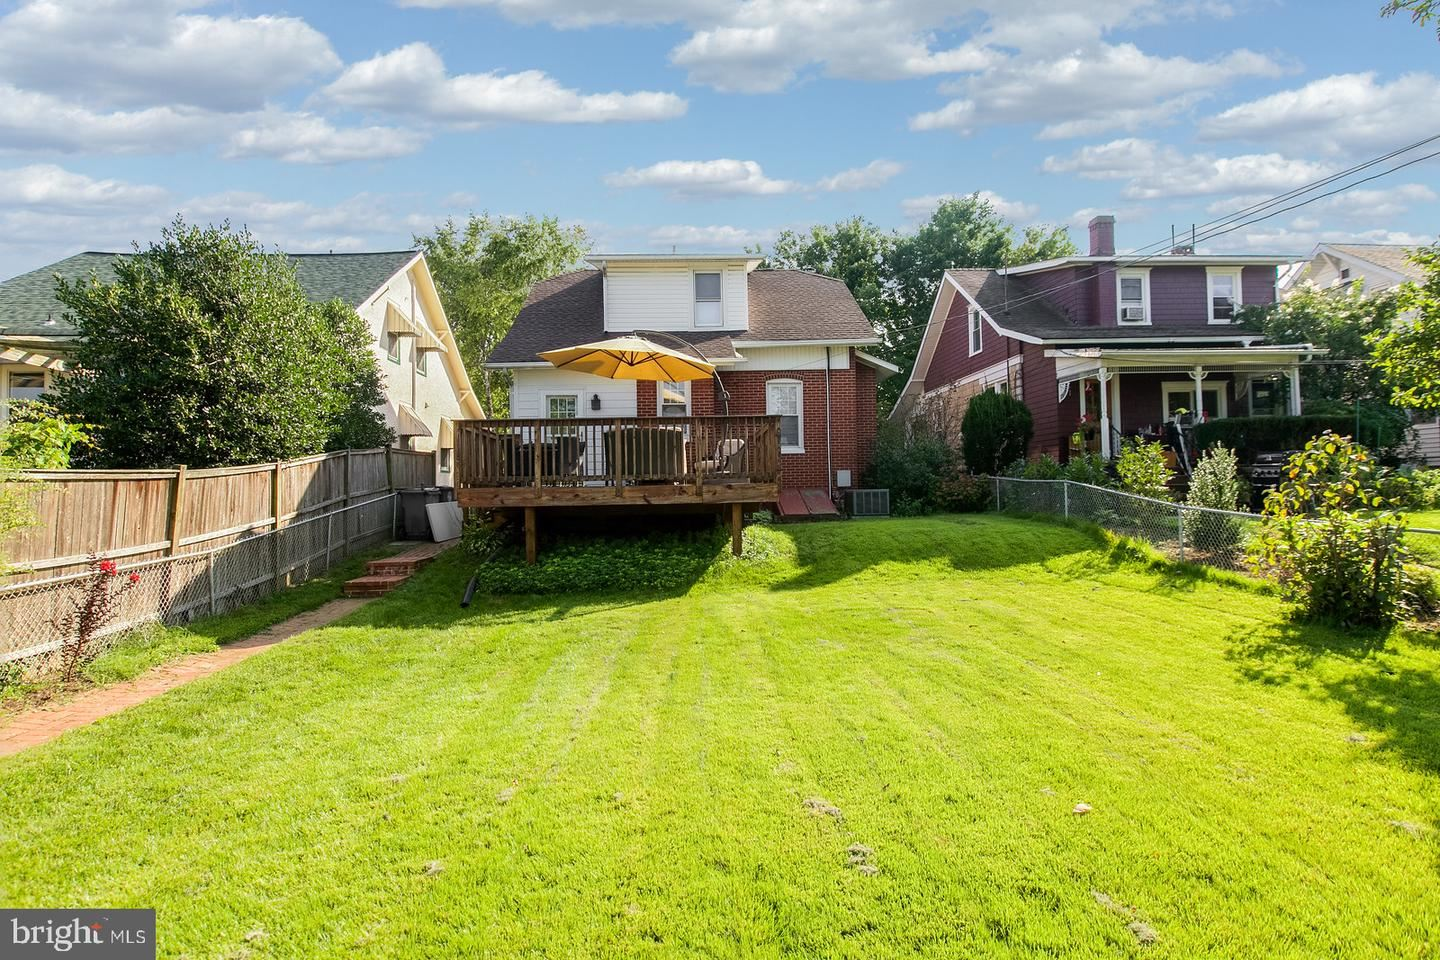 Photo of 3 W 13TH ST, FREDERICK, MD 21701 (MLS # MDFR270566)